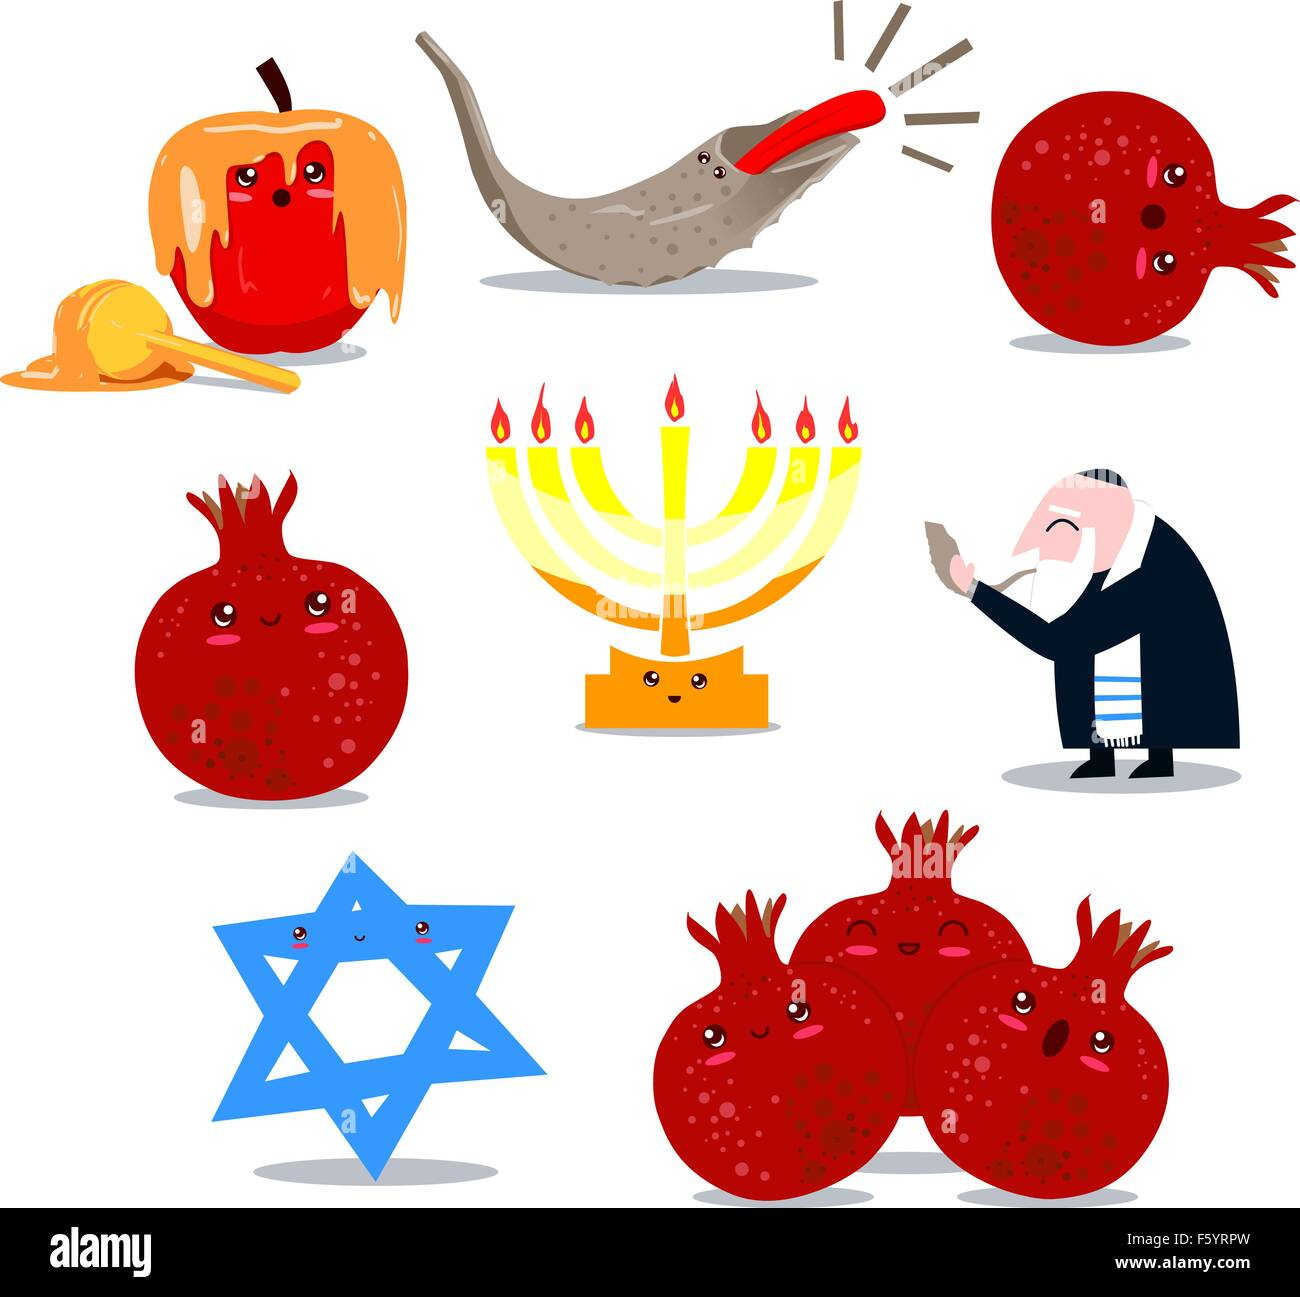 A Pack Of Vector Illustrations Of Famous Jewish Symbols For The